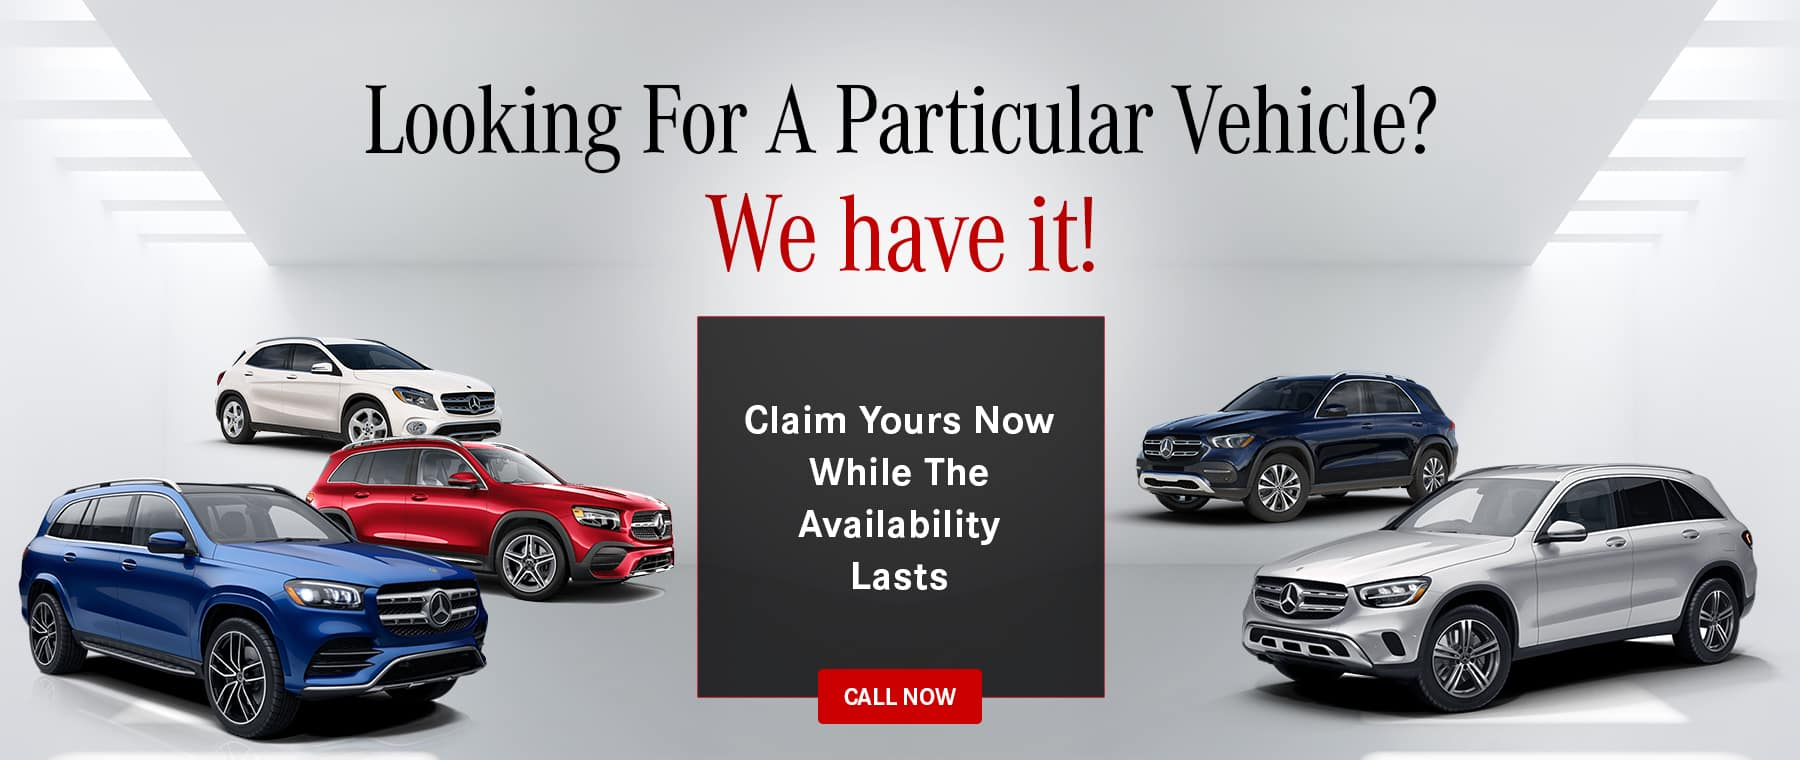 Mercedes-Benz Claim Your Vehicle